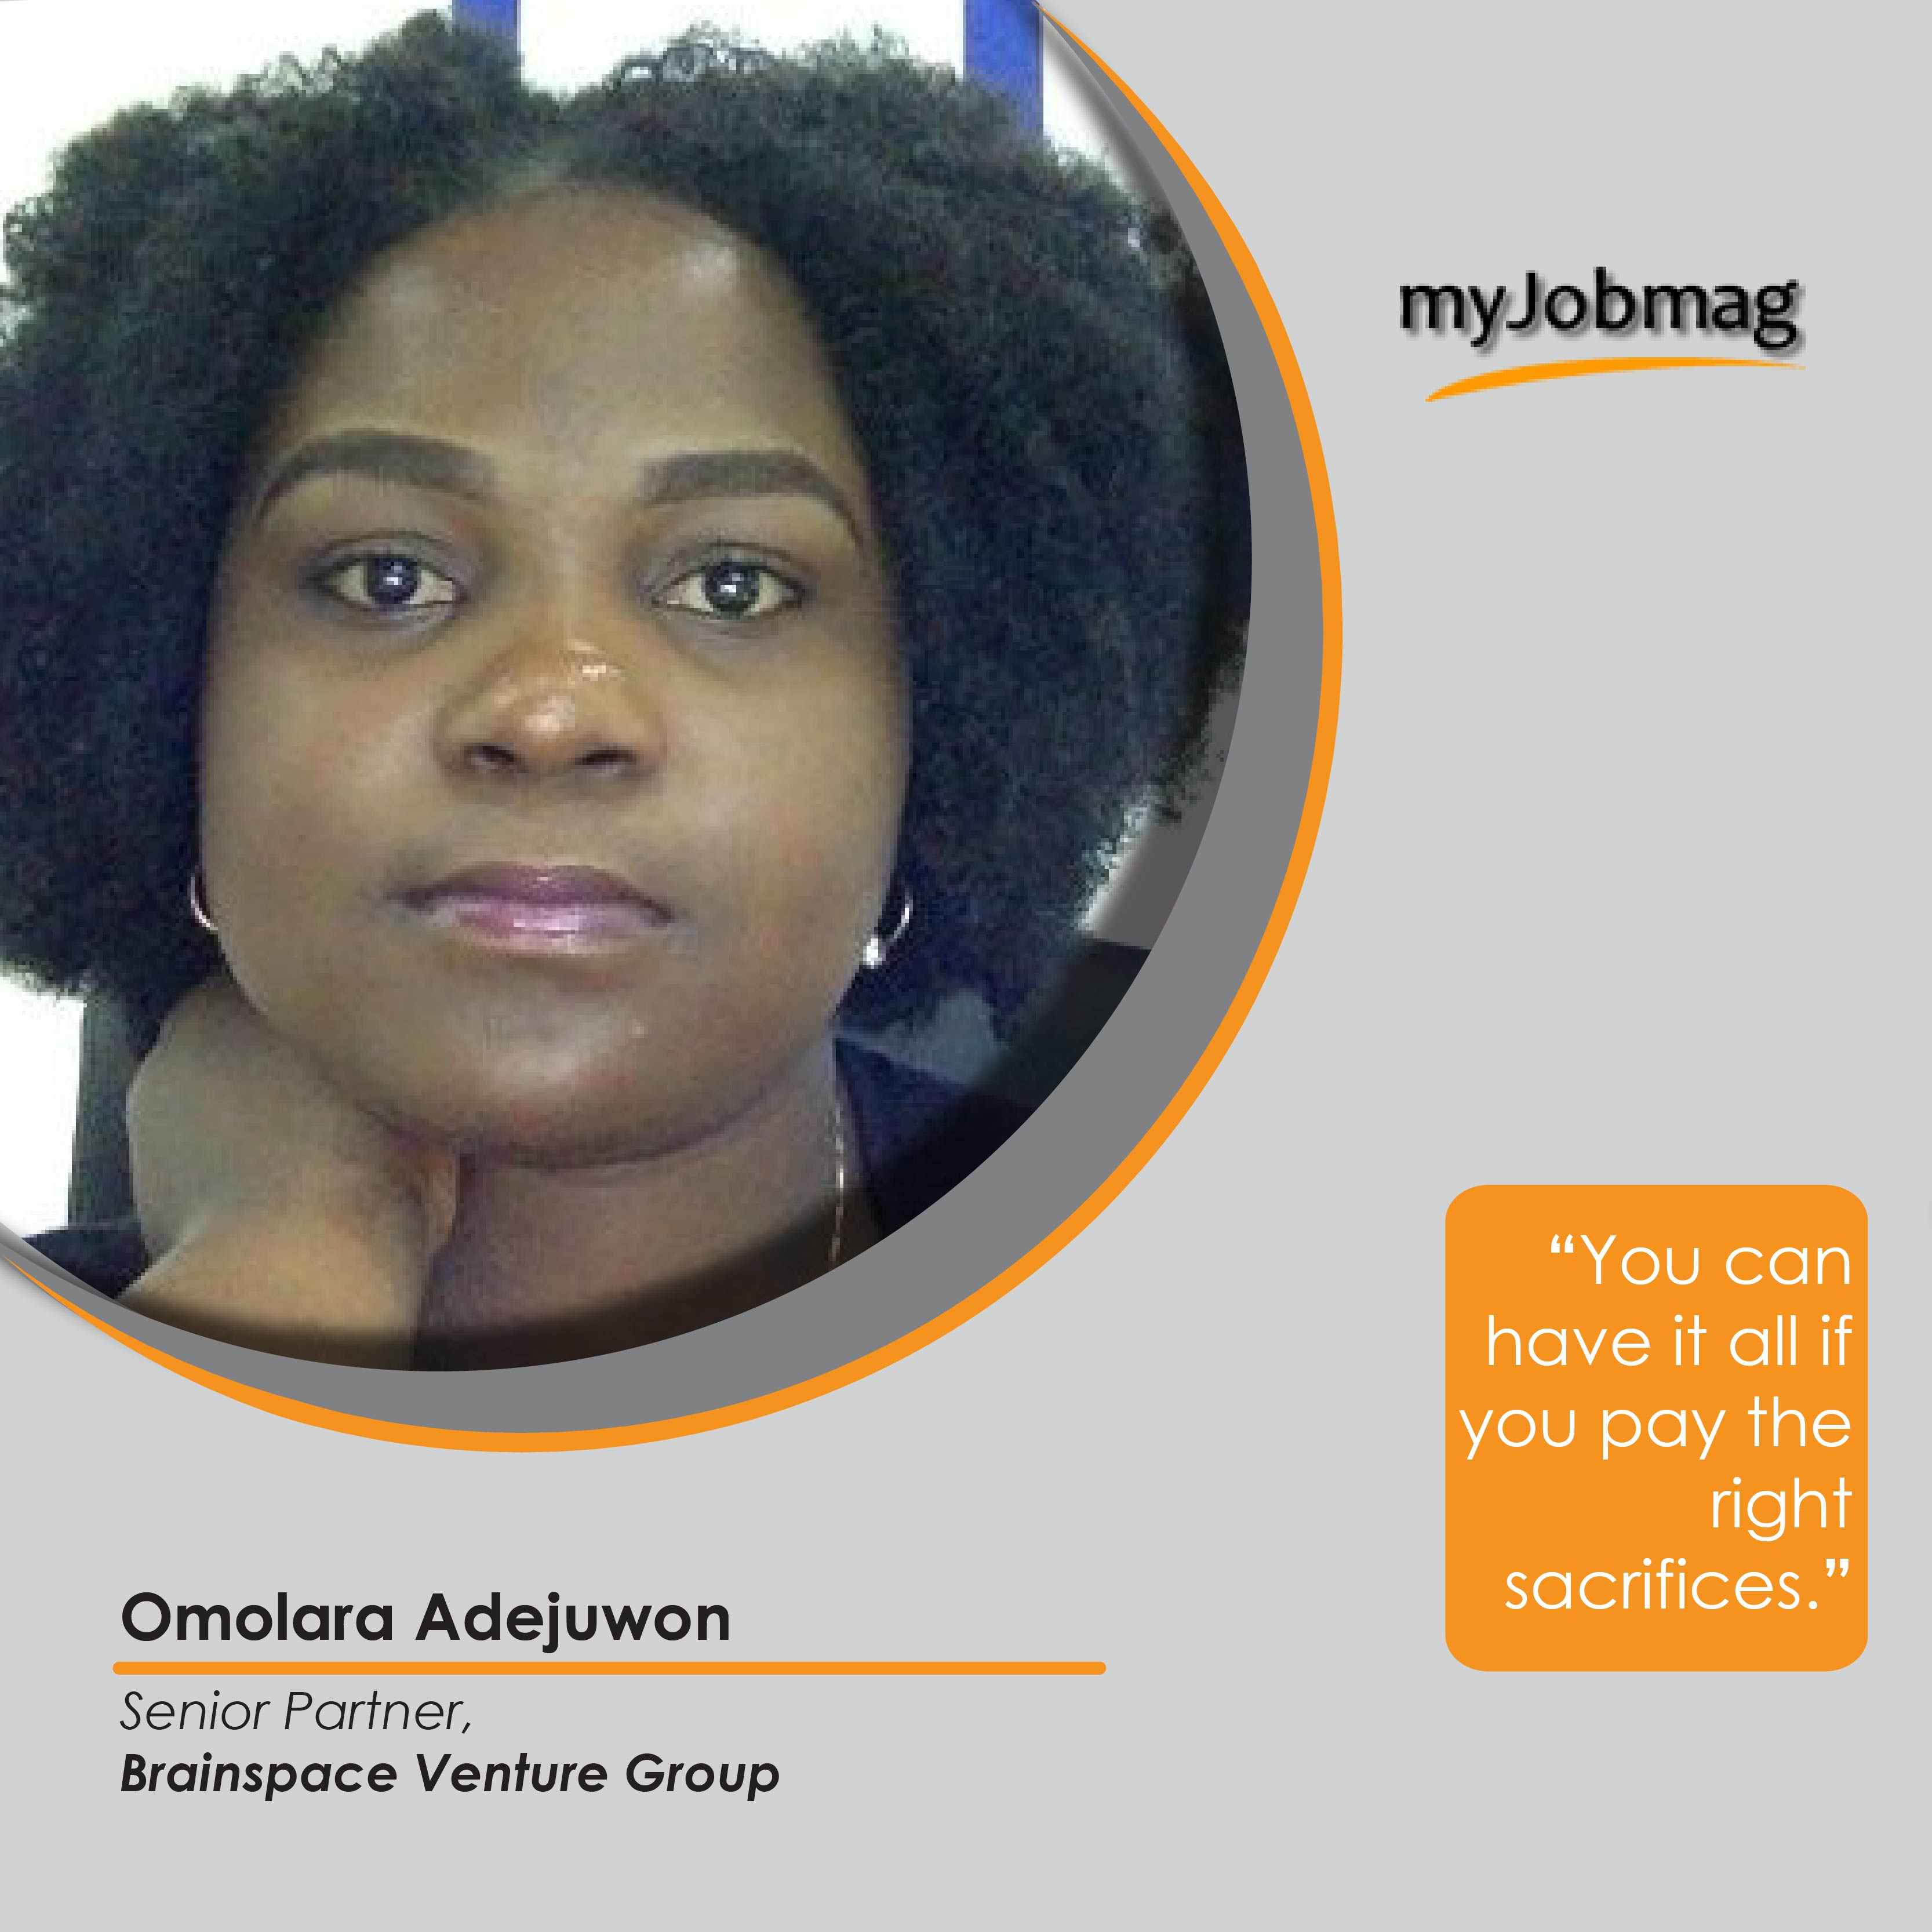 Omolara Adejuwon career advice MyJobMag